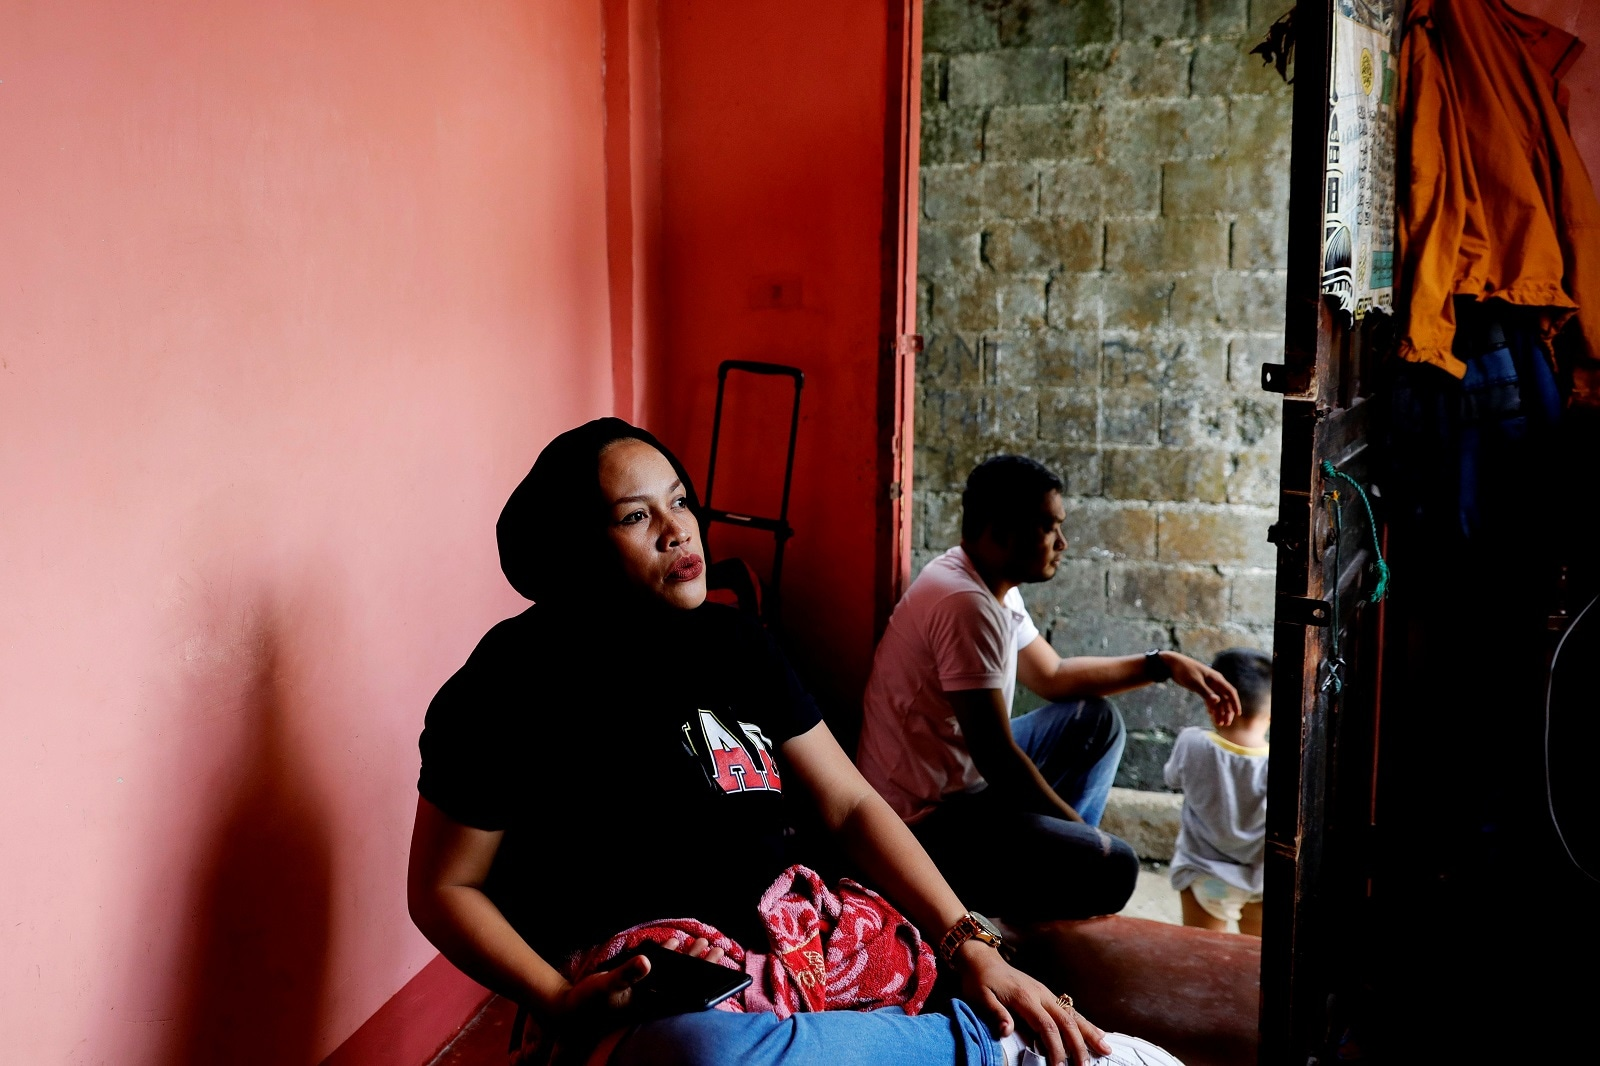 Noronisah Laba Gundarangin, 40, sits inside her sister's home in Marawi City, Lanao del Sur province, Philippines, May 13, 2019. REUTERS/Eloisa Lopez